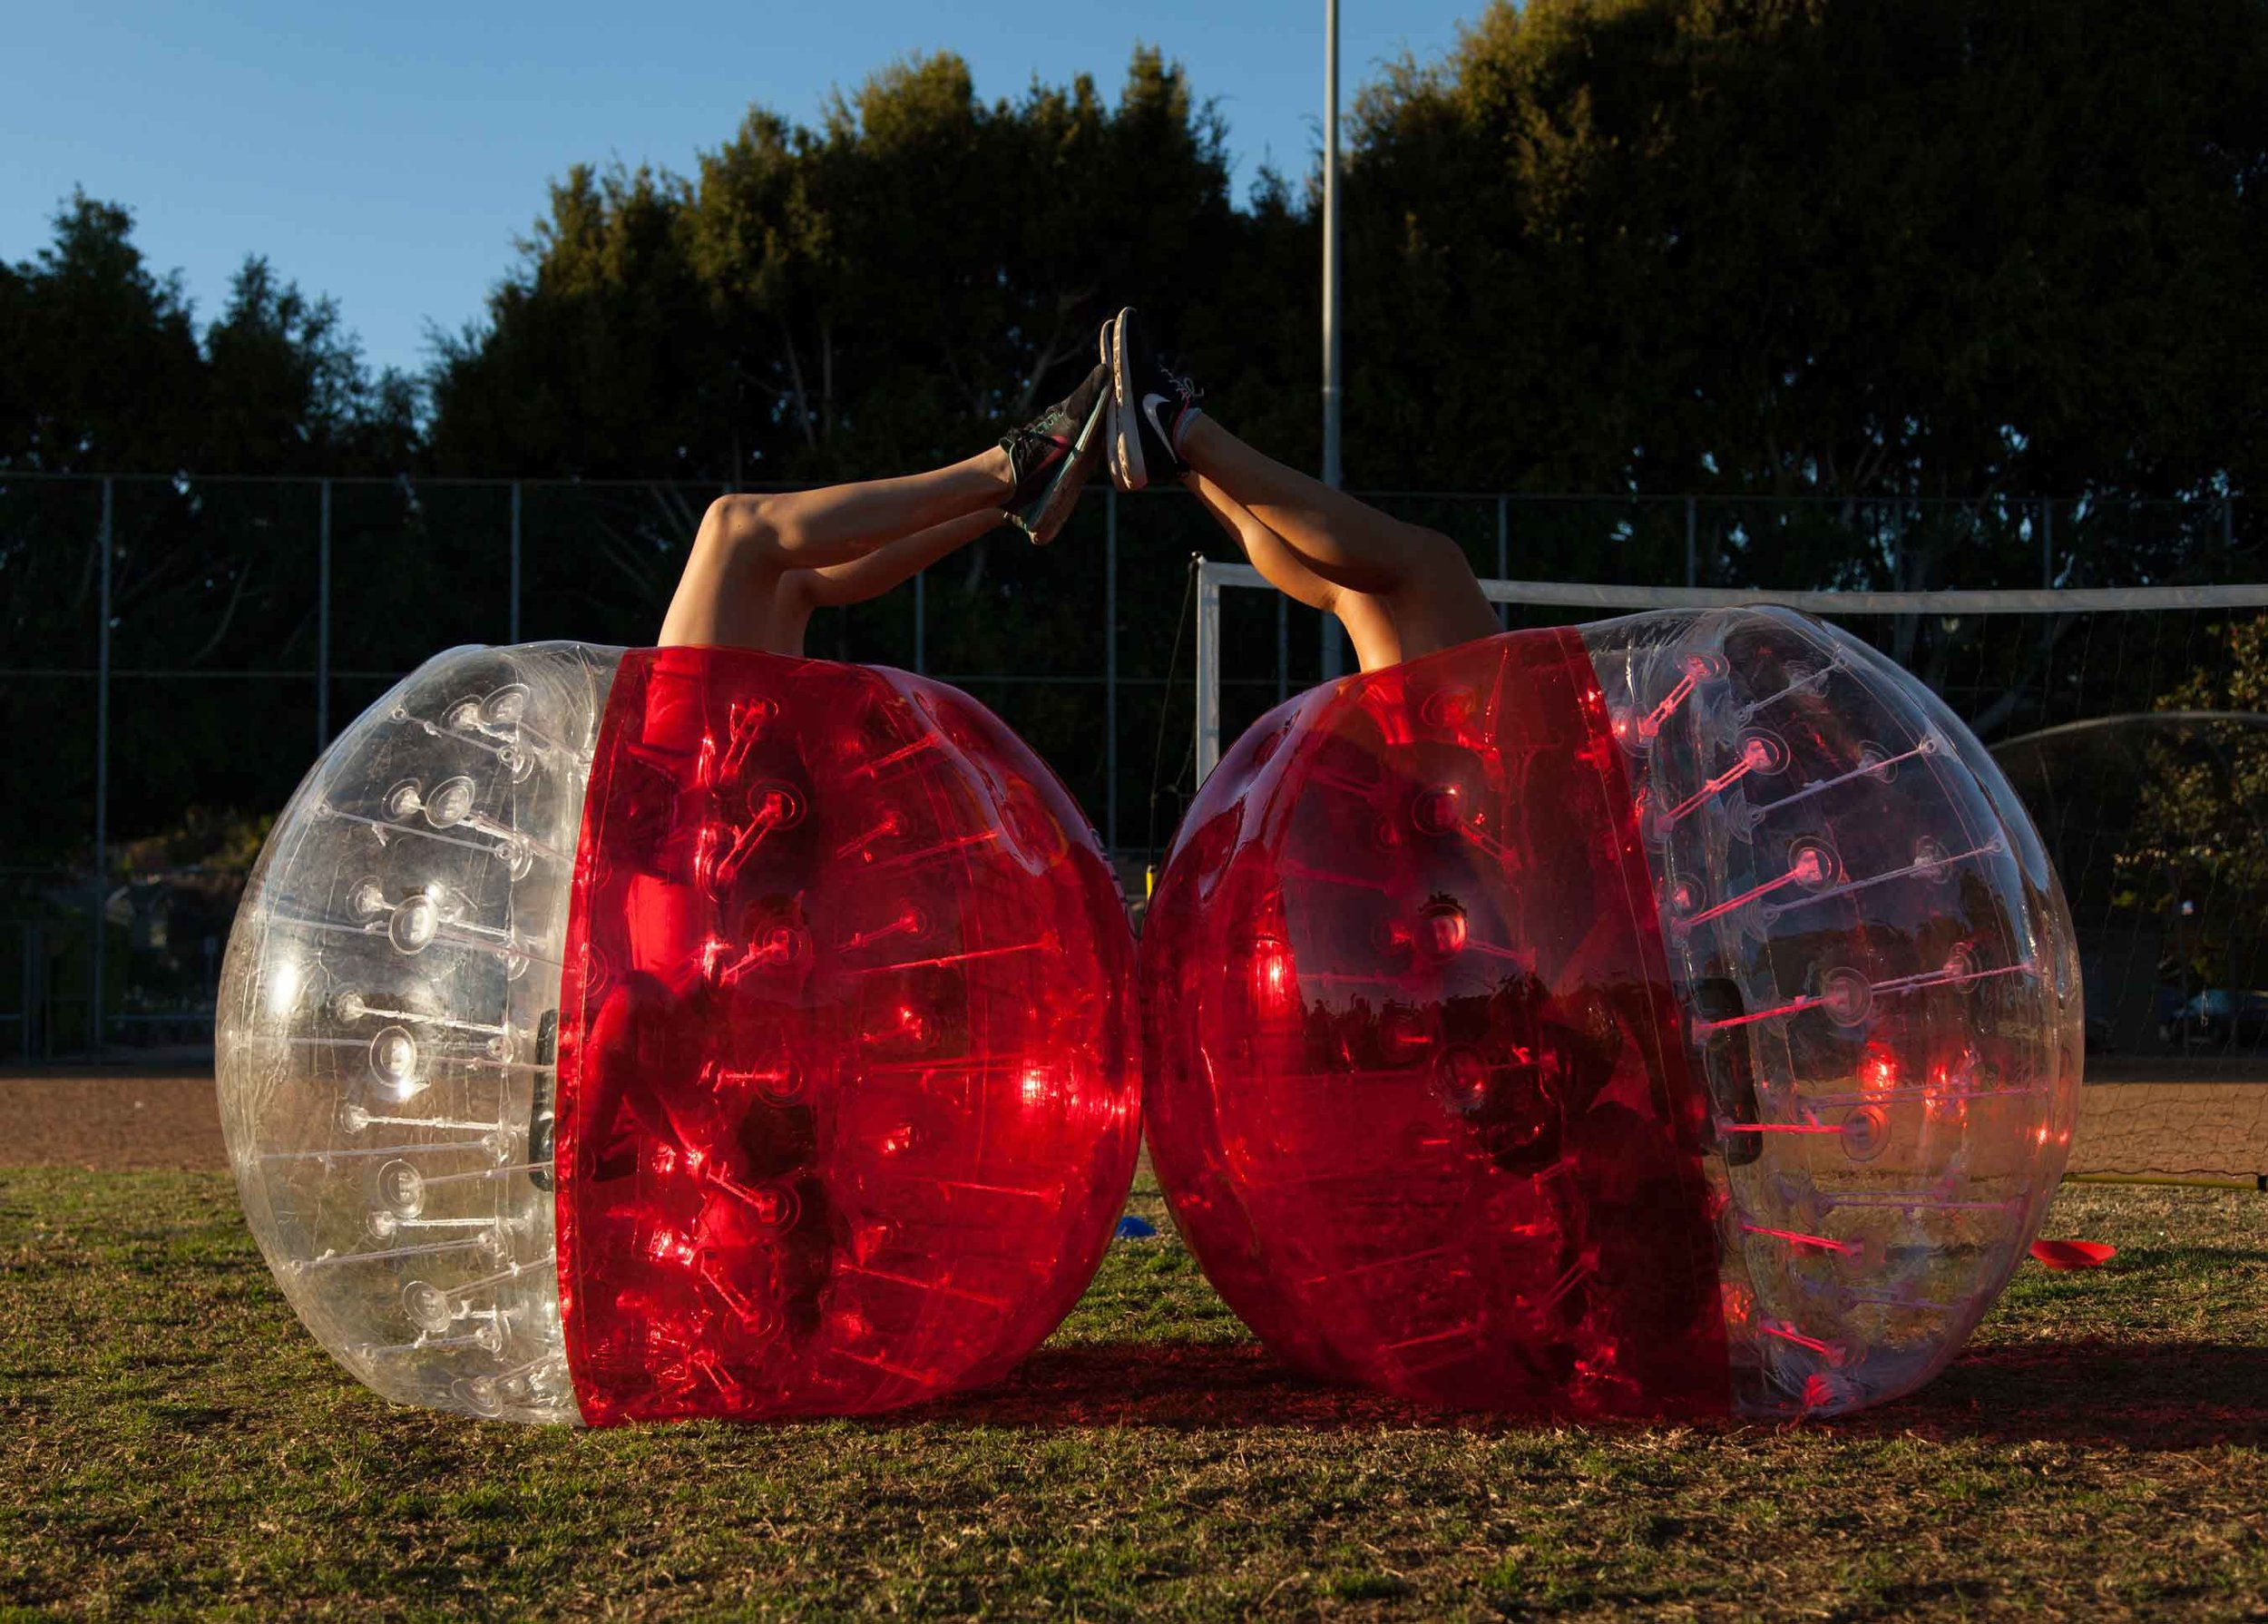 Show your love for Bubble Soccer